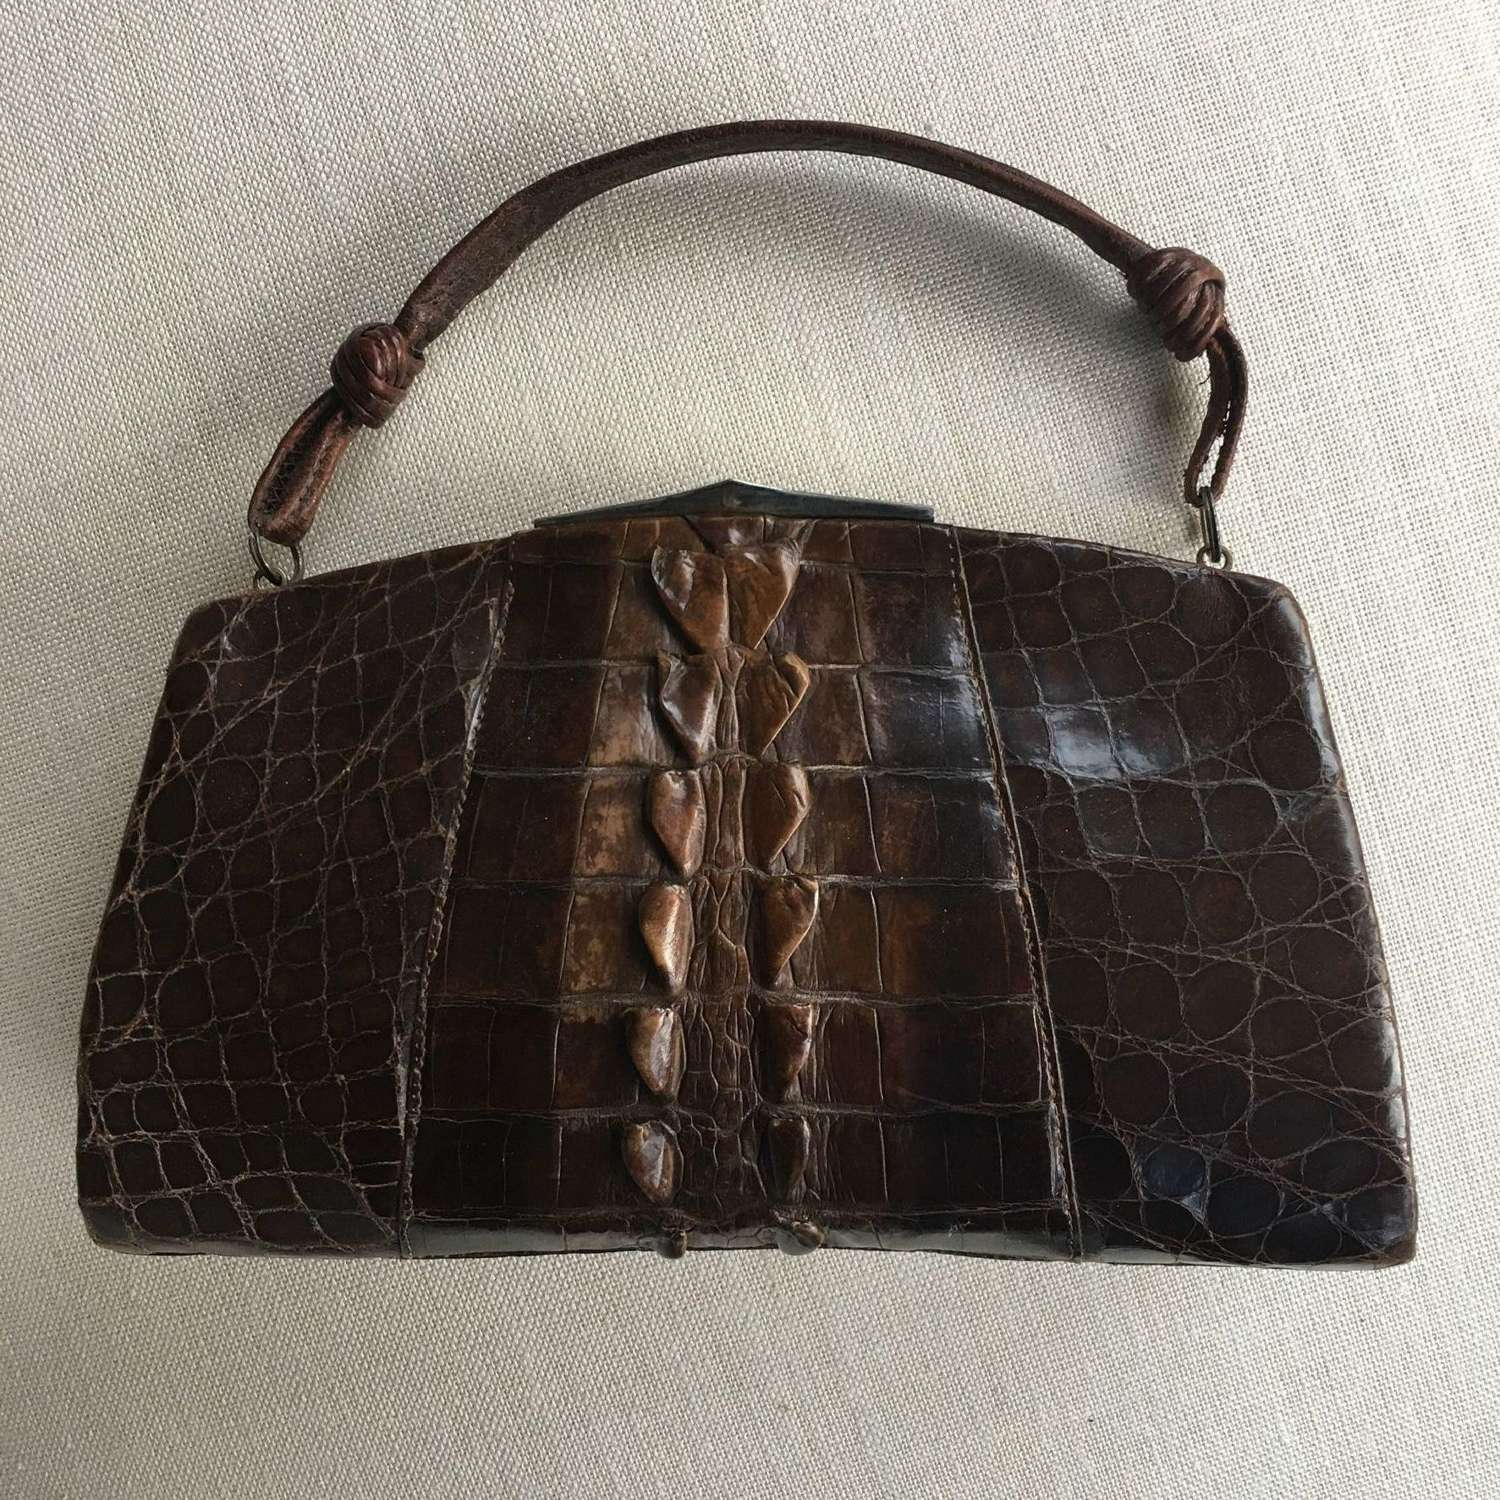 1920-30 vintage crocodile handbag